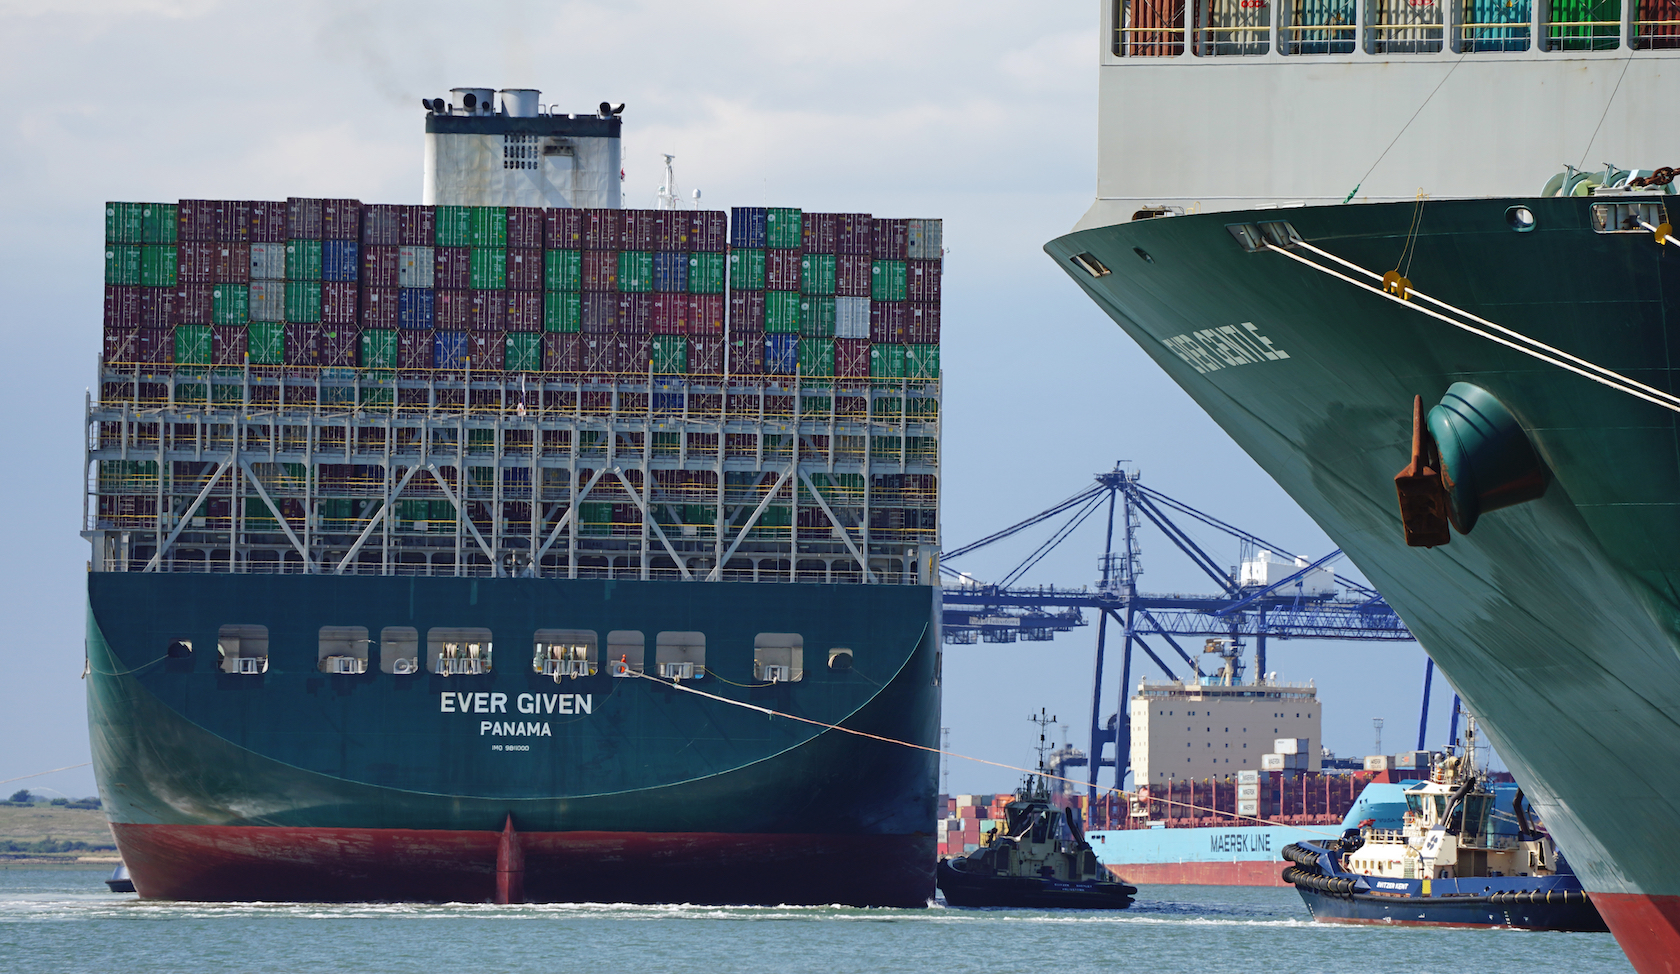 The container ship Ever Given, chartered and operated by container transportation and shipping company Evergreen Marine, seen here arriving at the Port of Felixstowe.